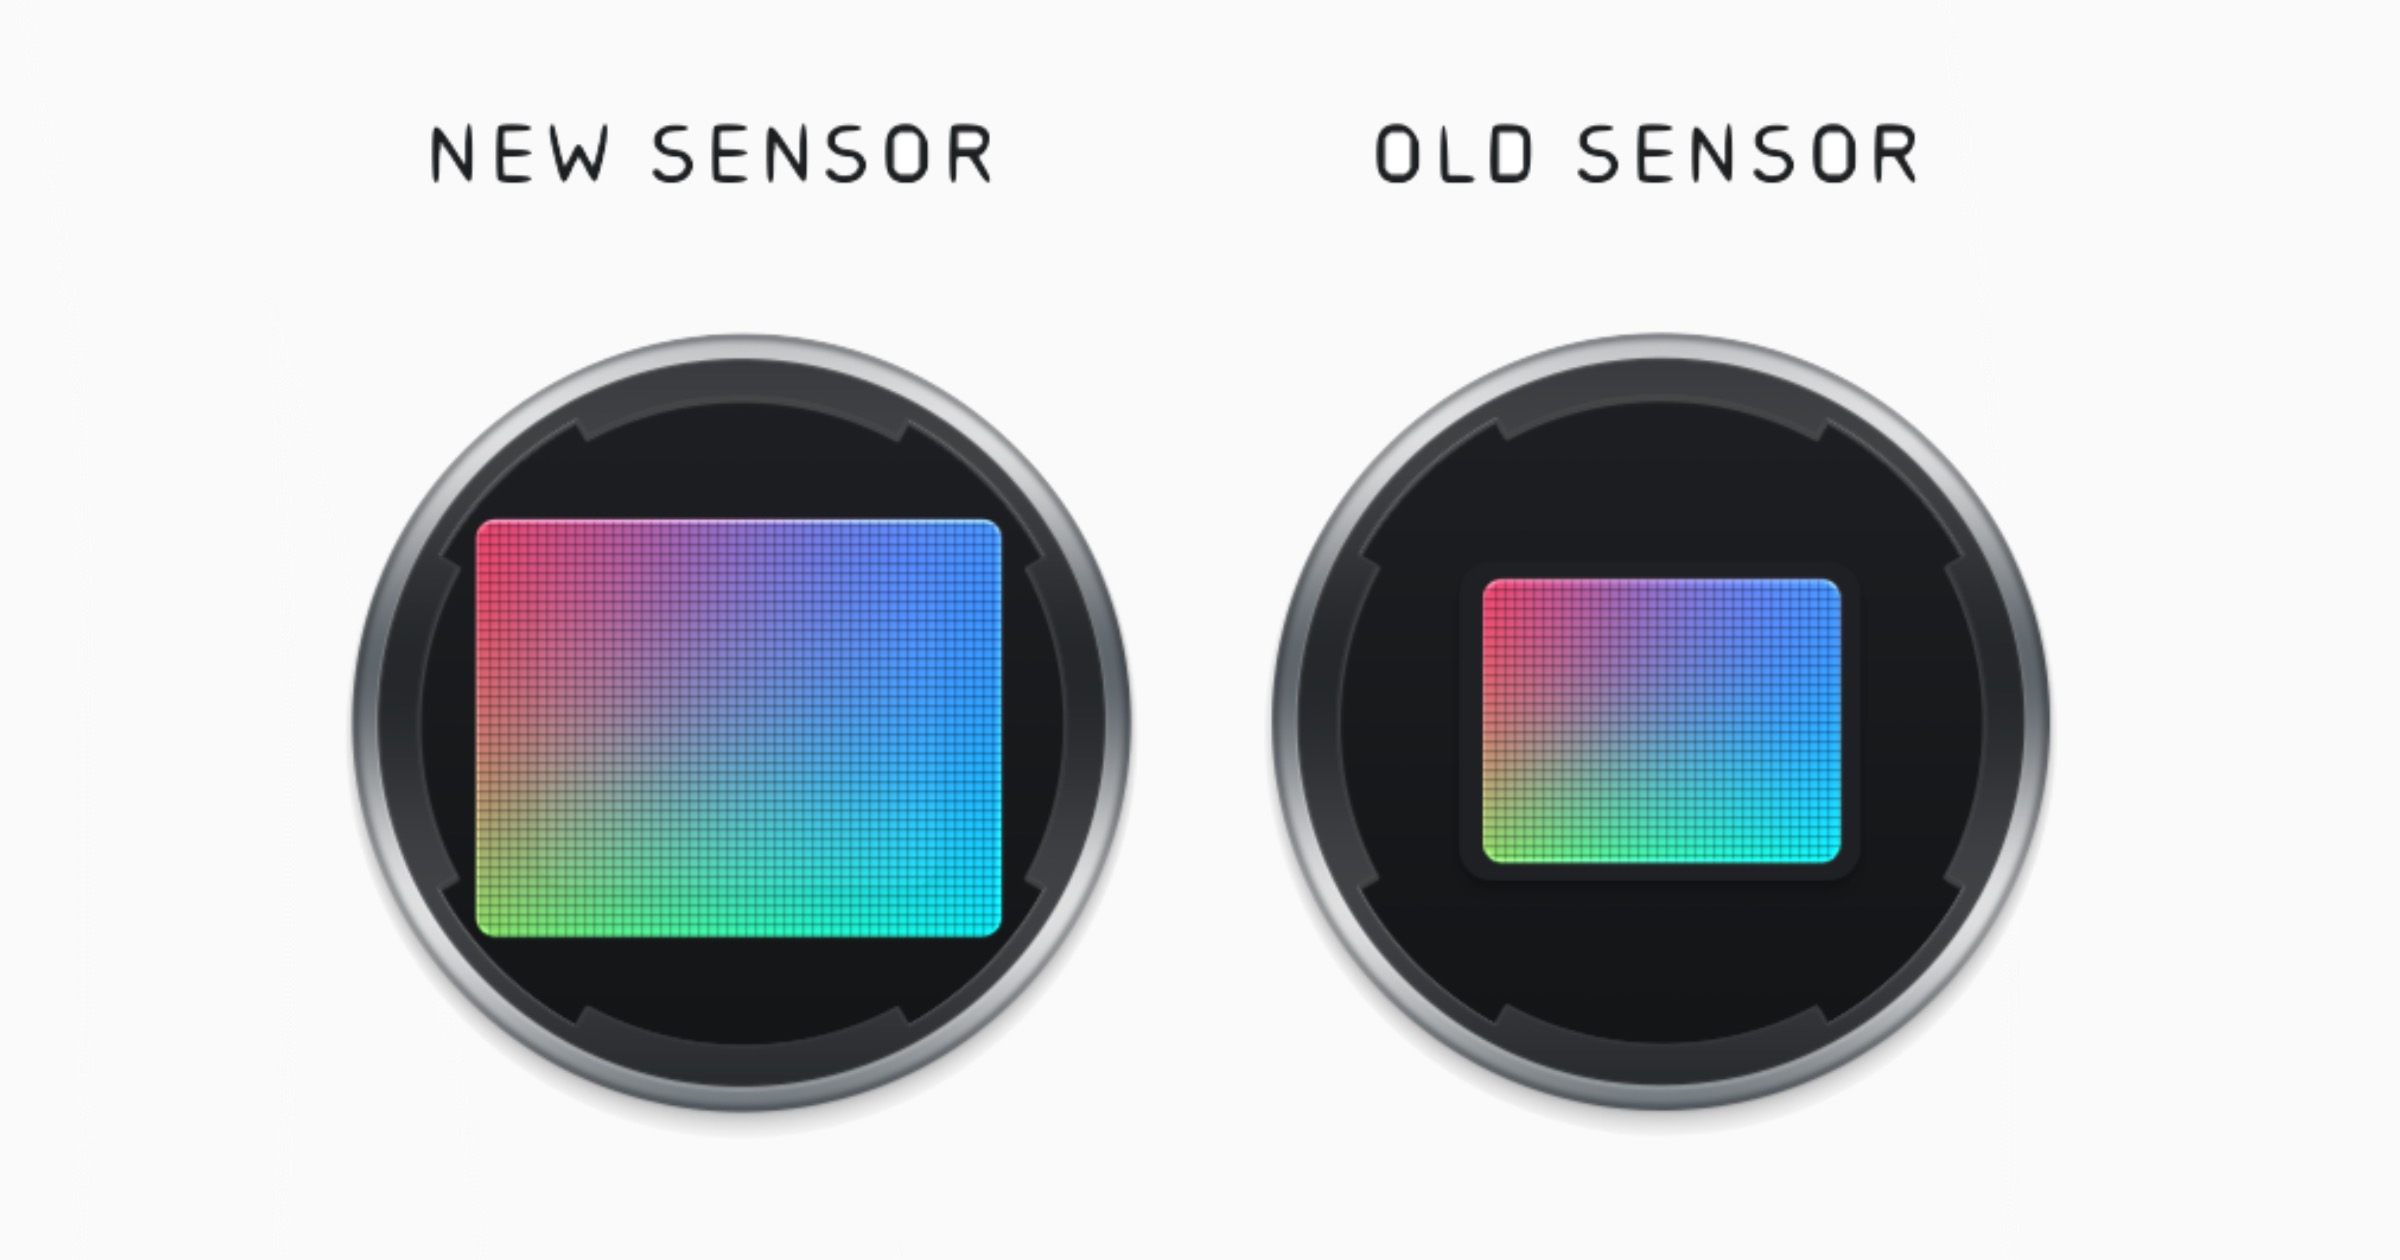 iPhone 12 pro max sensor difference